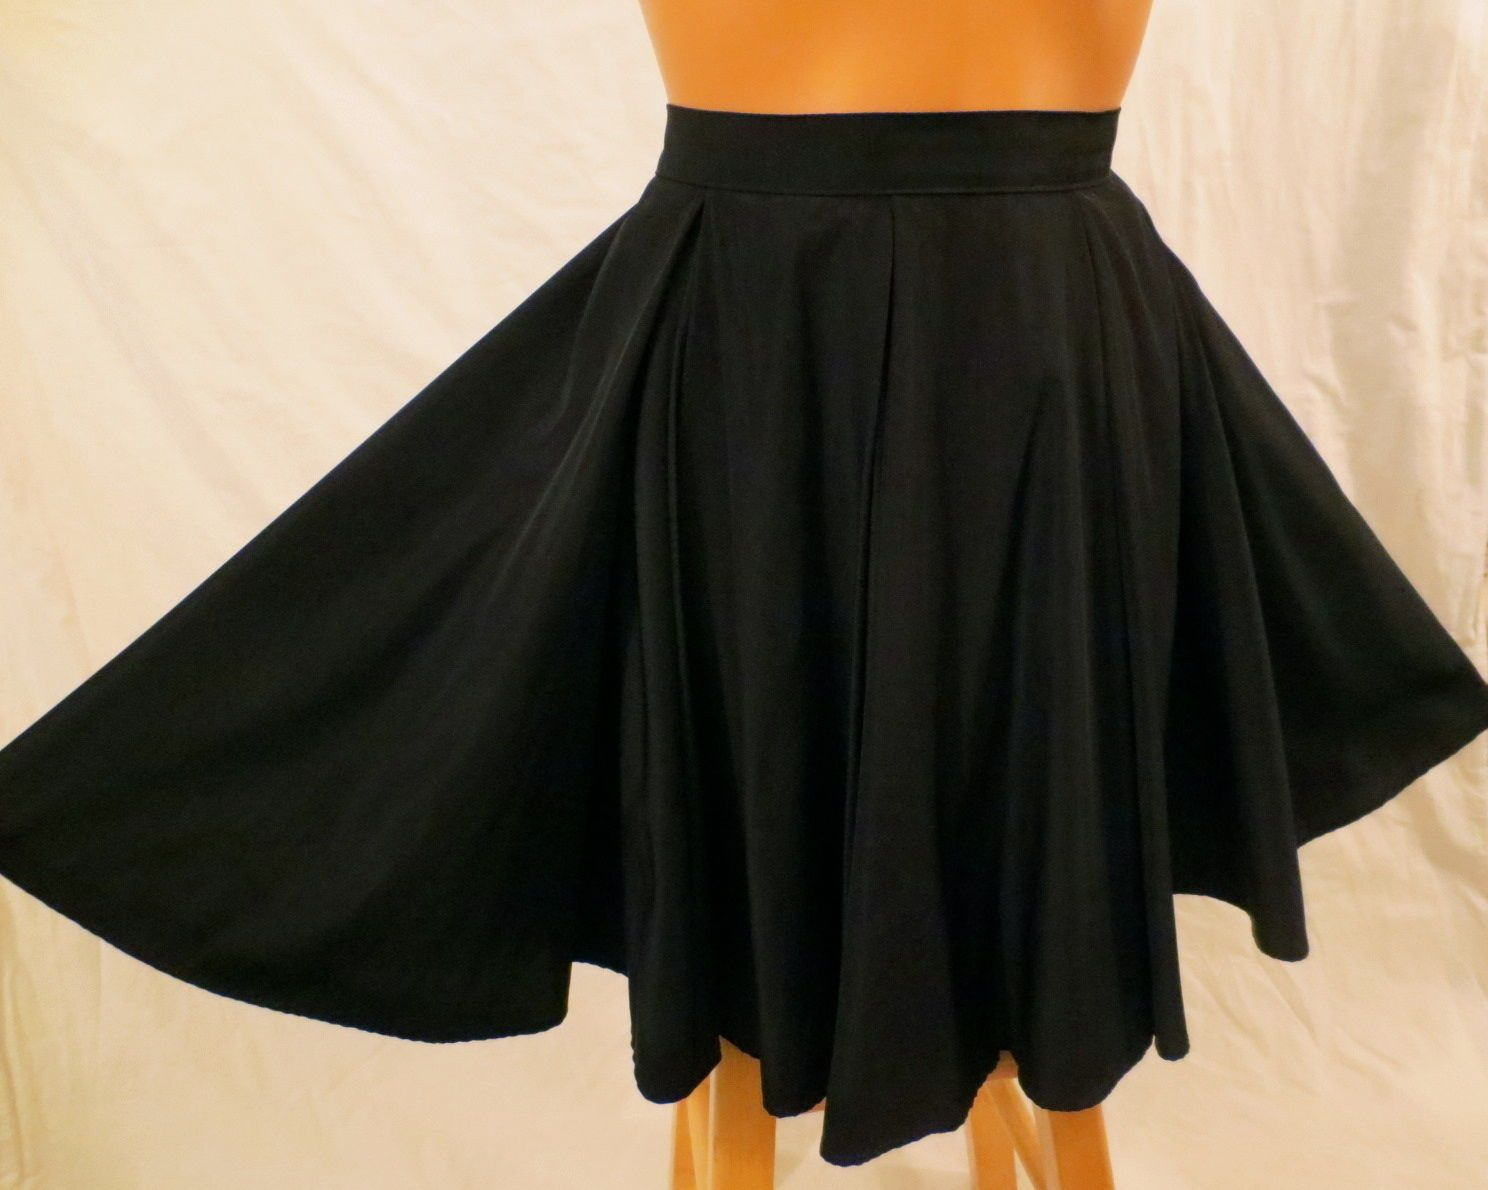 AMERICAN APPAREL short gore skirt - $19.99 at JOHNNY BOMBSHELL #fullskirt #skaterskirt #swingskirt #circleskirt #black #AmericanApparel